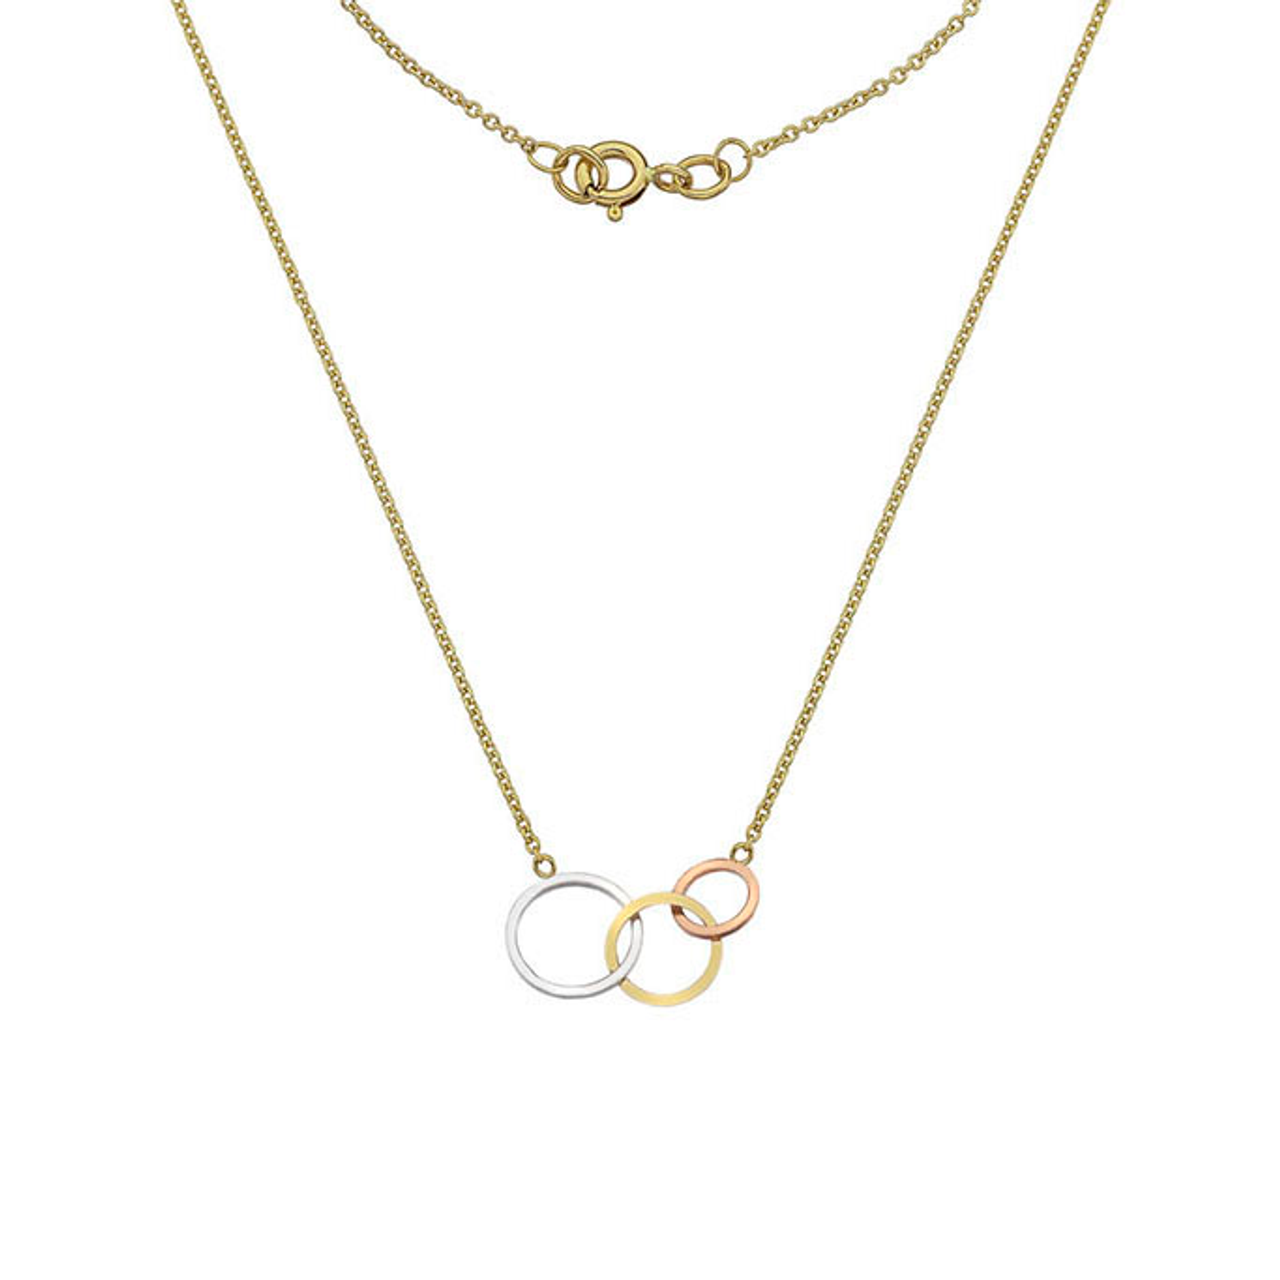 9ct Yellow, White & Rose Gold circle Necklace